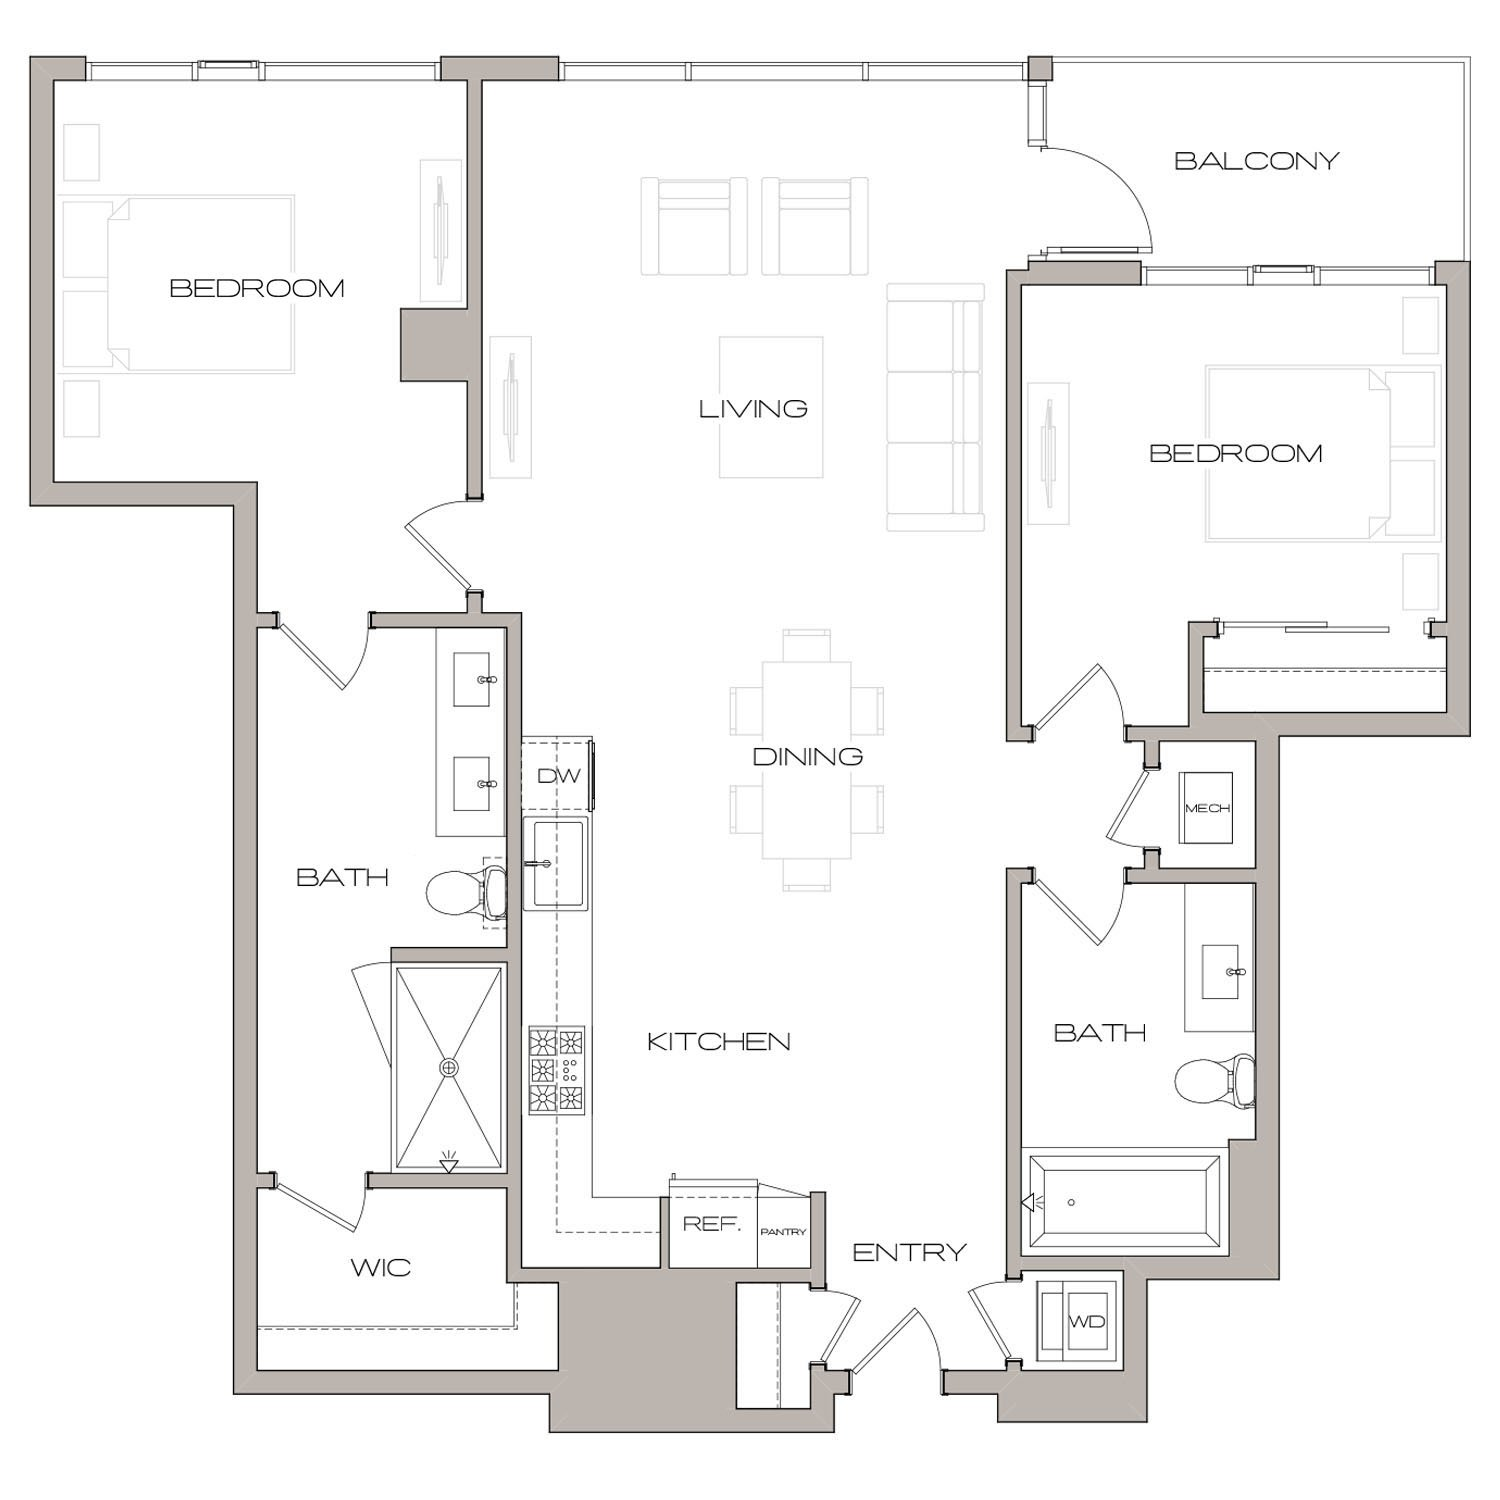 B 6 floor plan diagram. Two bedrooms, two bathrooms, an open kitchen and living area, a balcony, and a washer dryer.